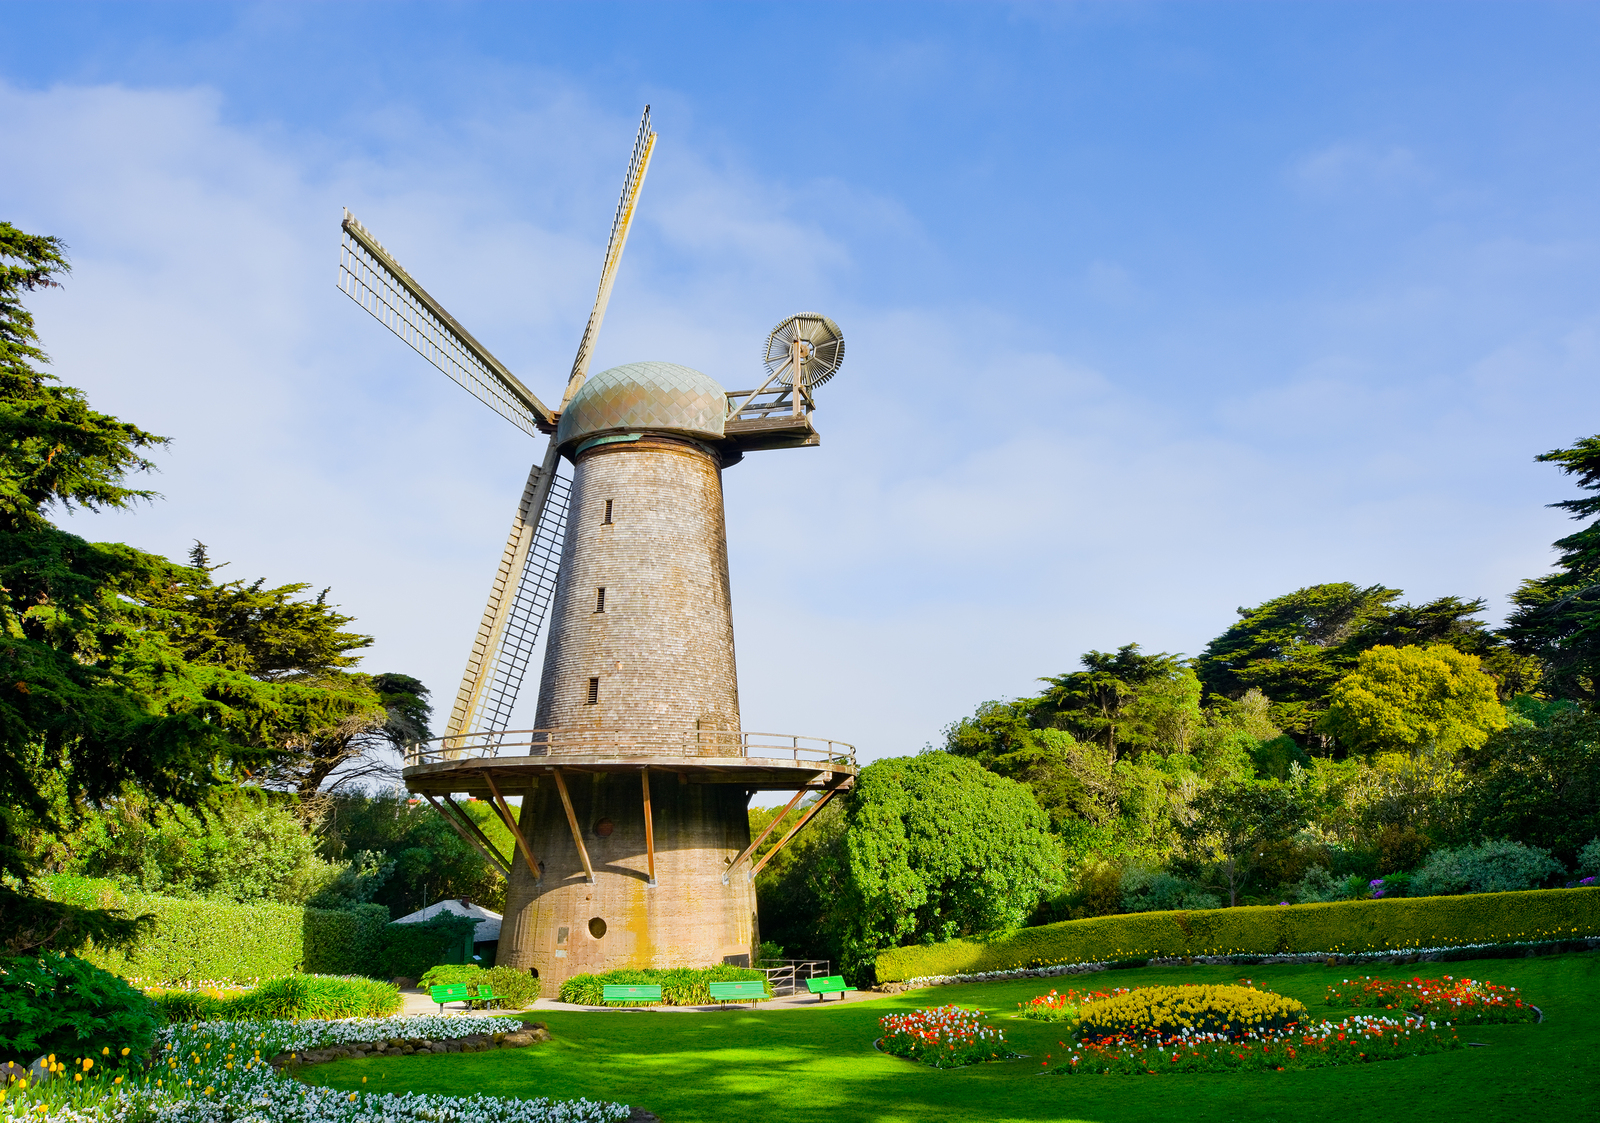 golden gate park windmills tulips